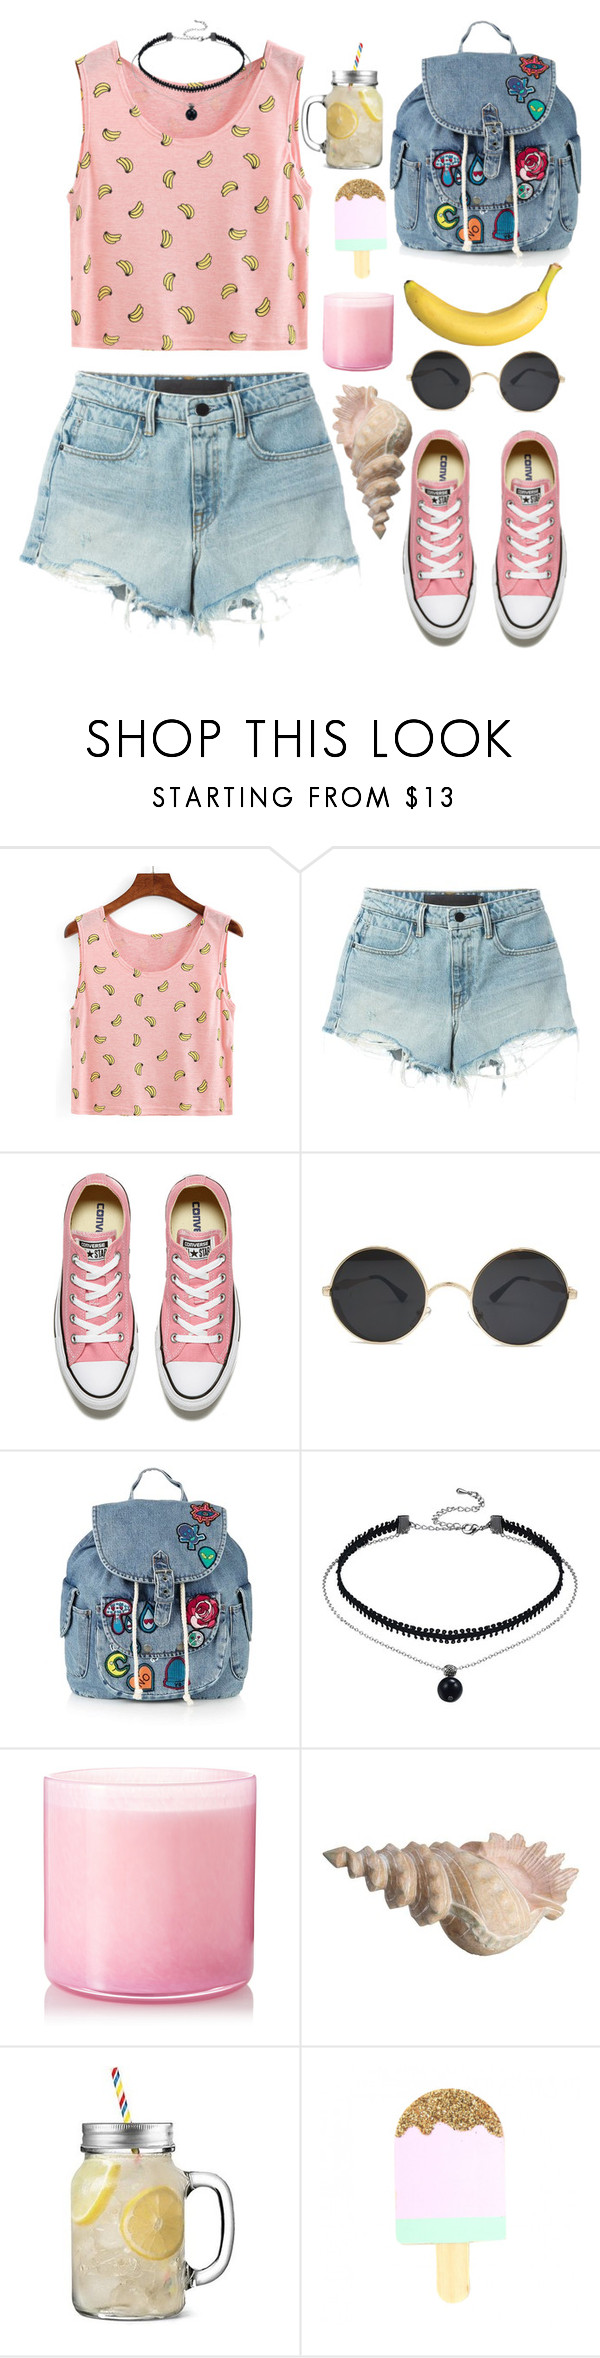 """🍌🍌🍌🍌🍌"" by hermiona355 ❤ liked on Polyvore featuring T By Alexander Wang, Converse, Topshop and LAFCO"